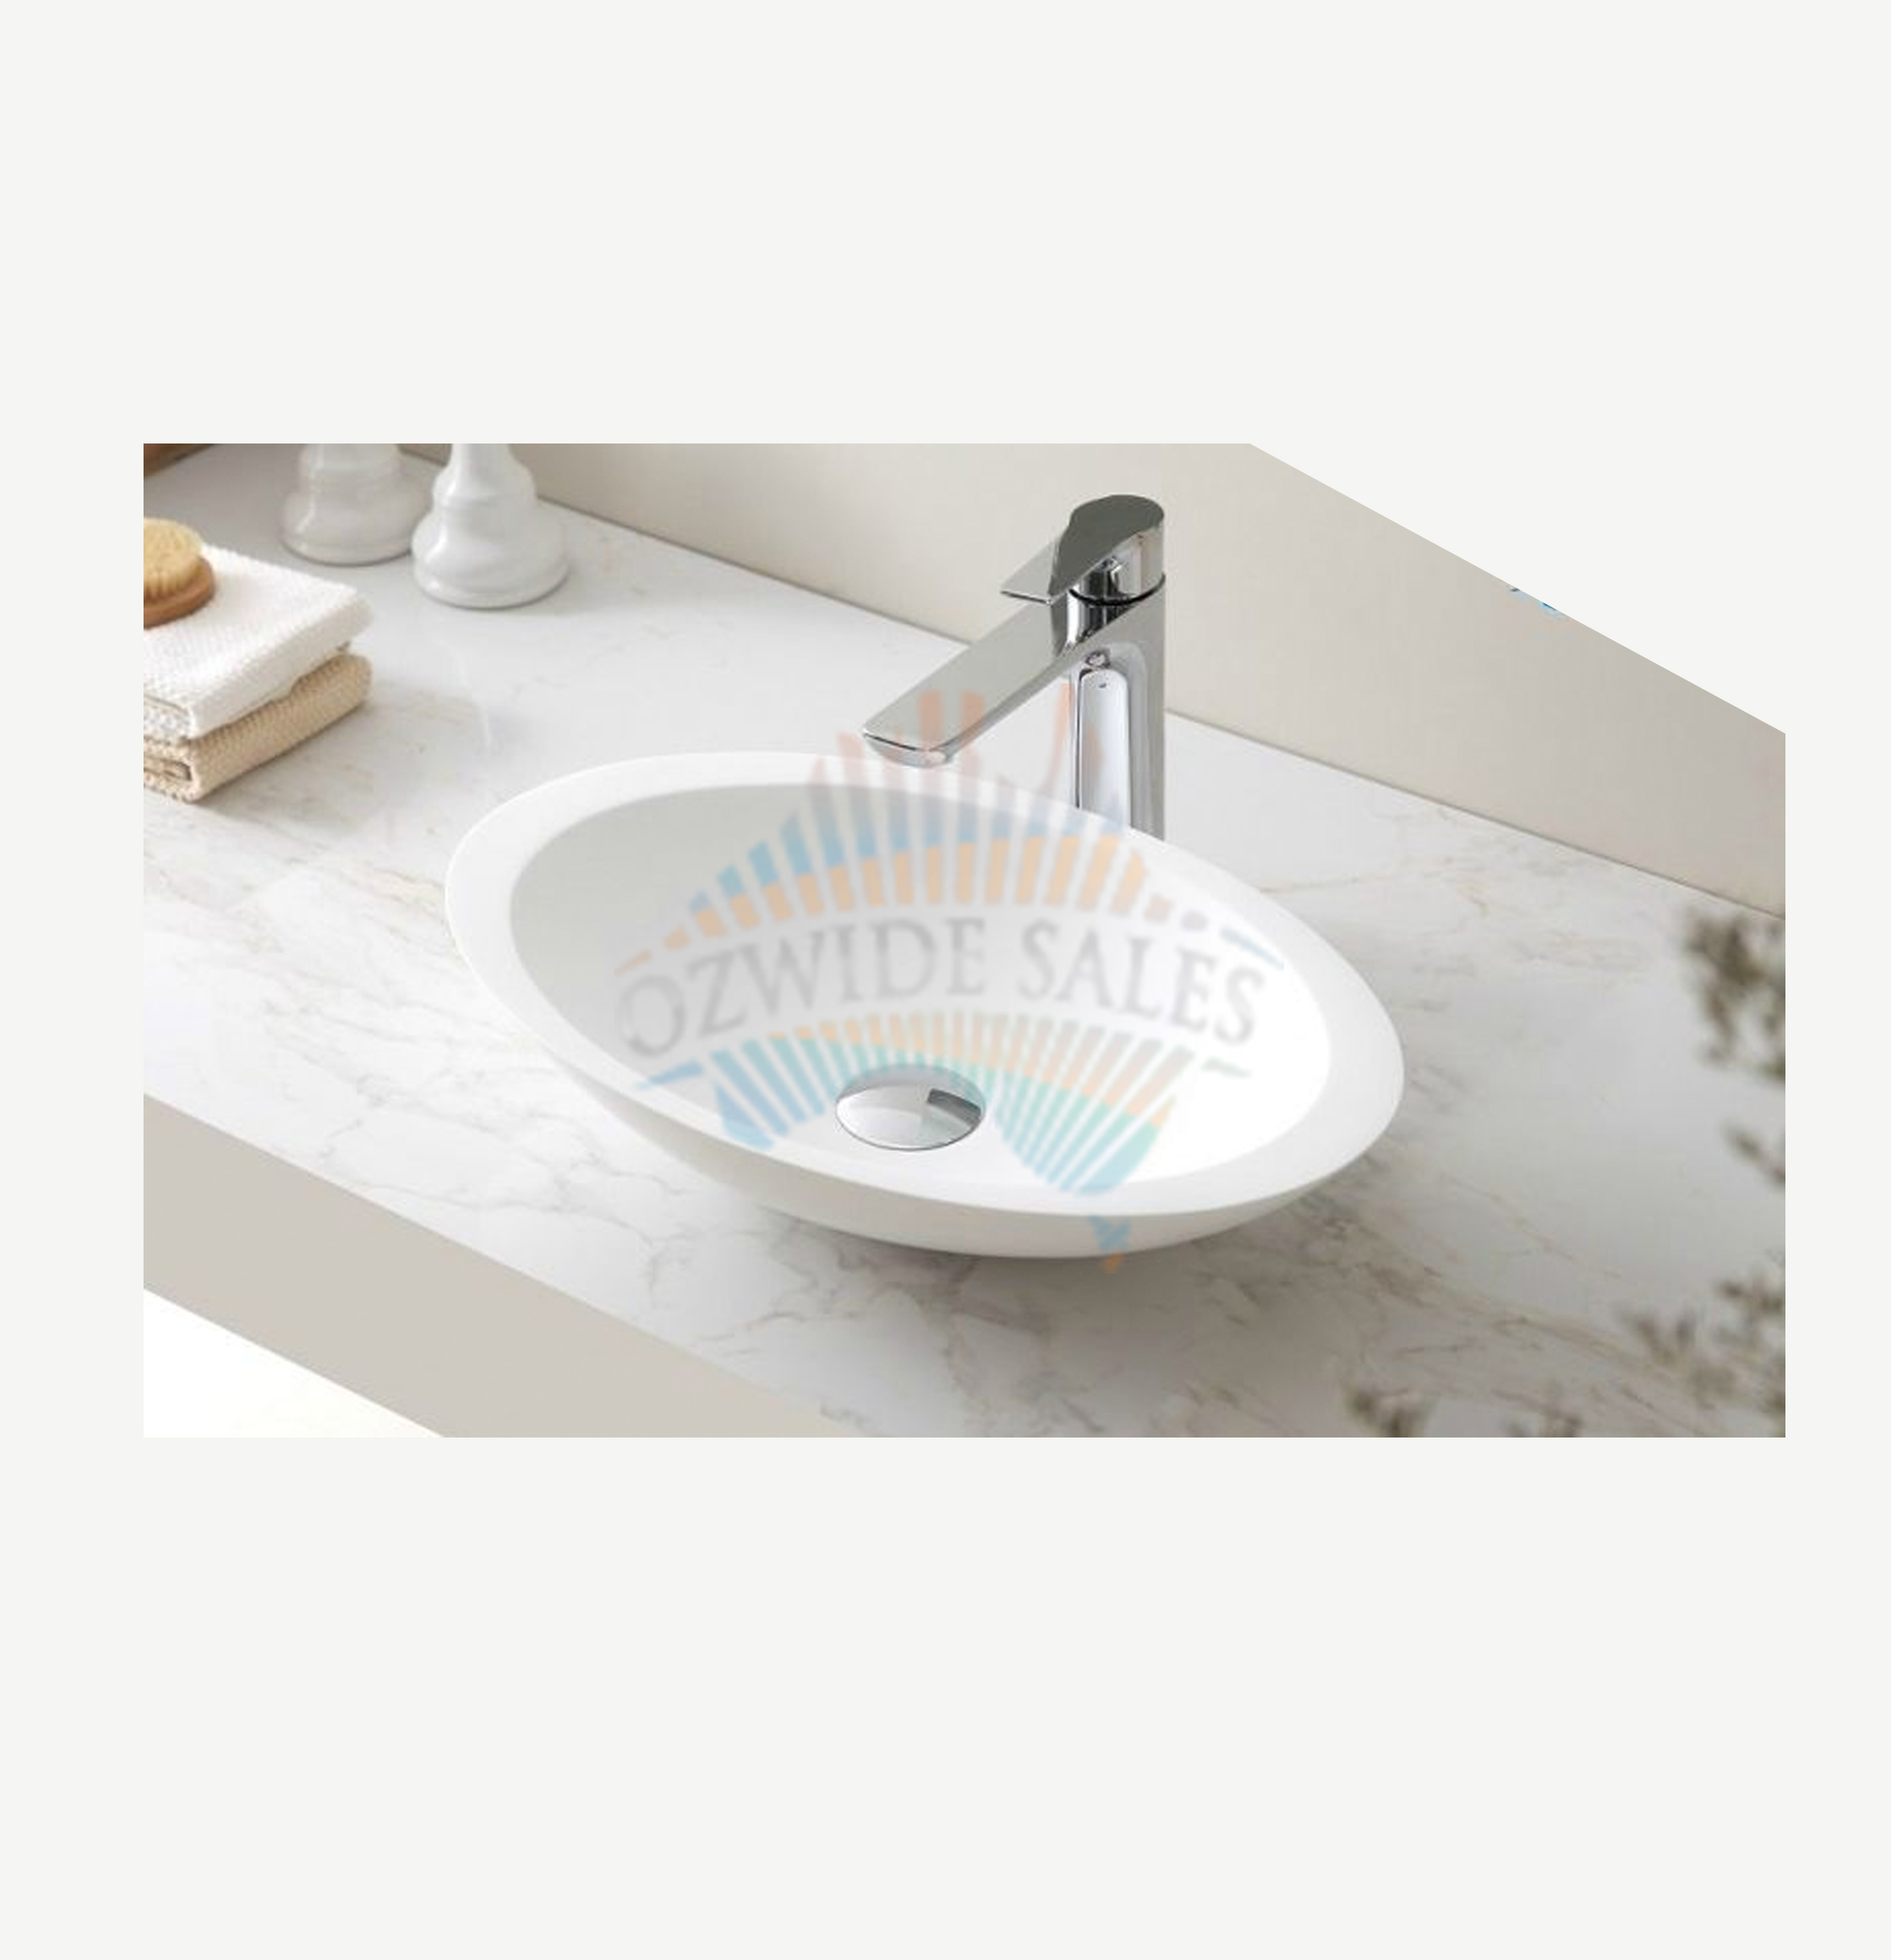 Bathroom Accessories Melbourne bathroom supplies melbourne | bathroom shops | ozwide sales